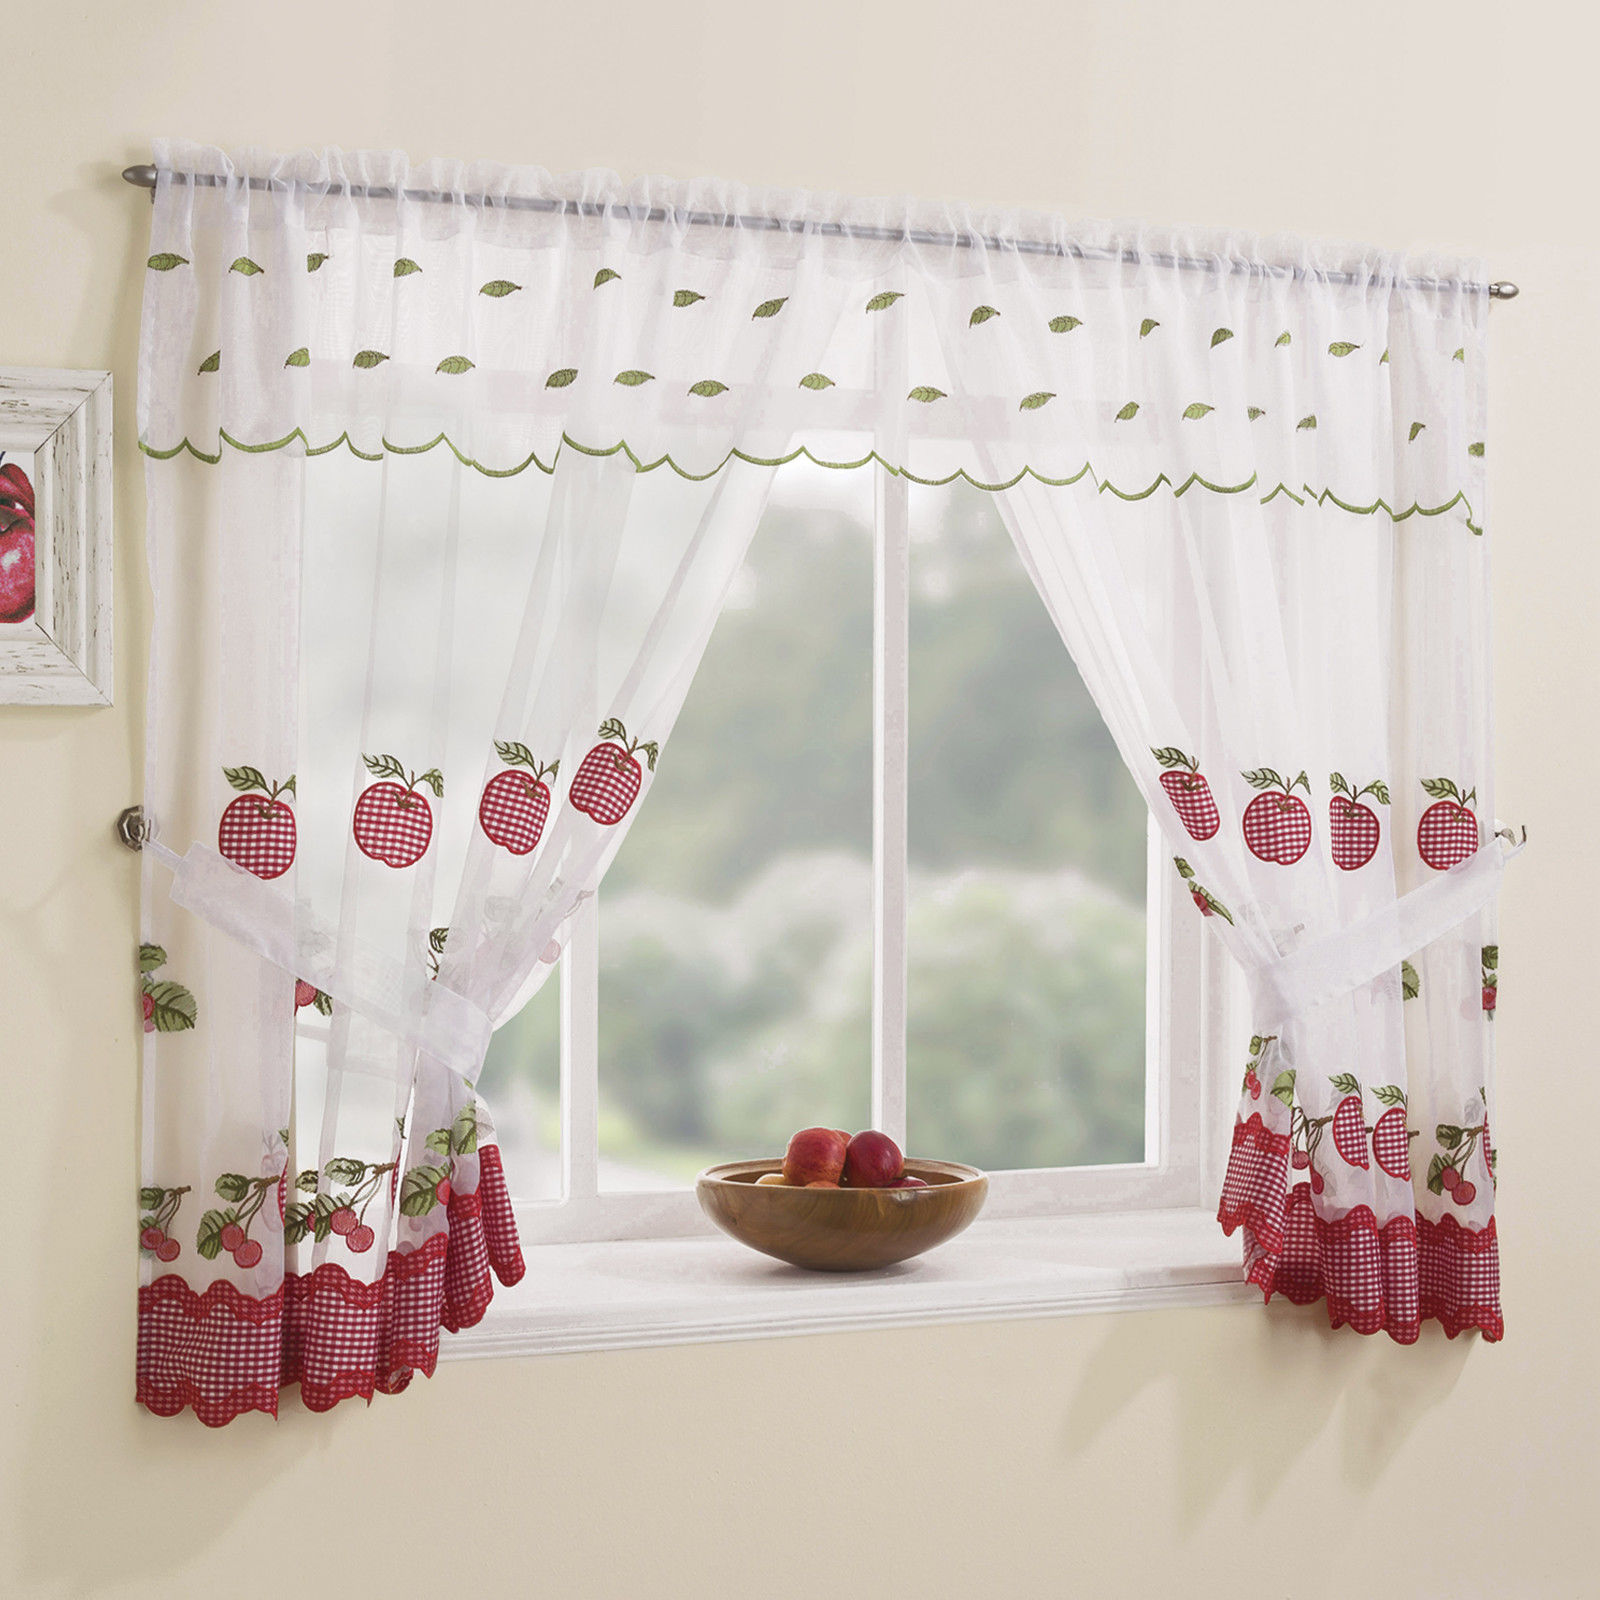 Kitchen Curtains And Valances: WINCHESTER KITCHEN WINDOW SET CHECK CURTAINS & TIE BACKS